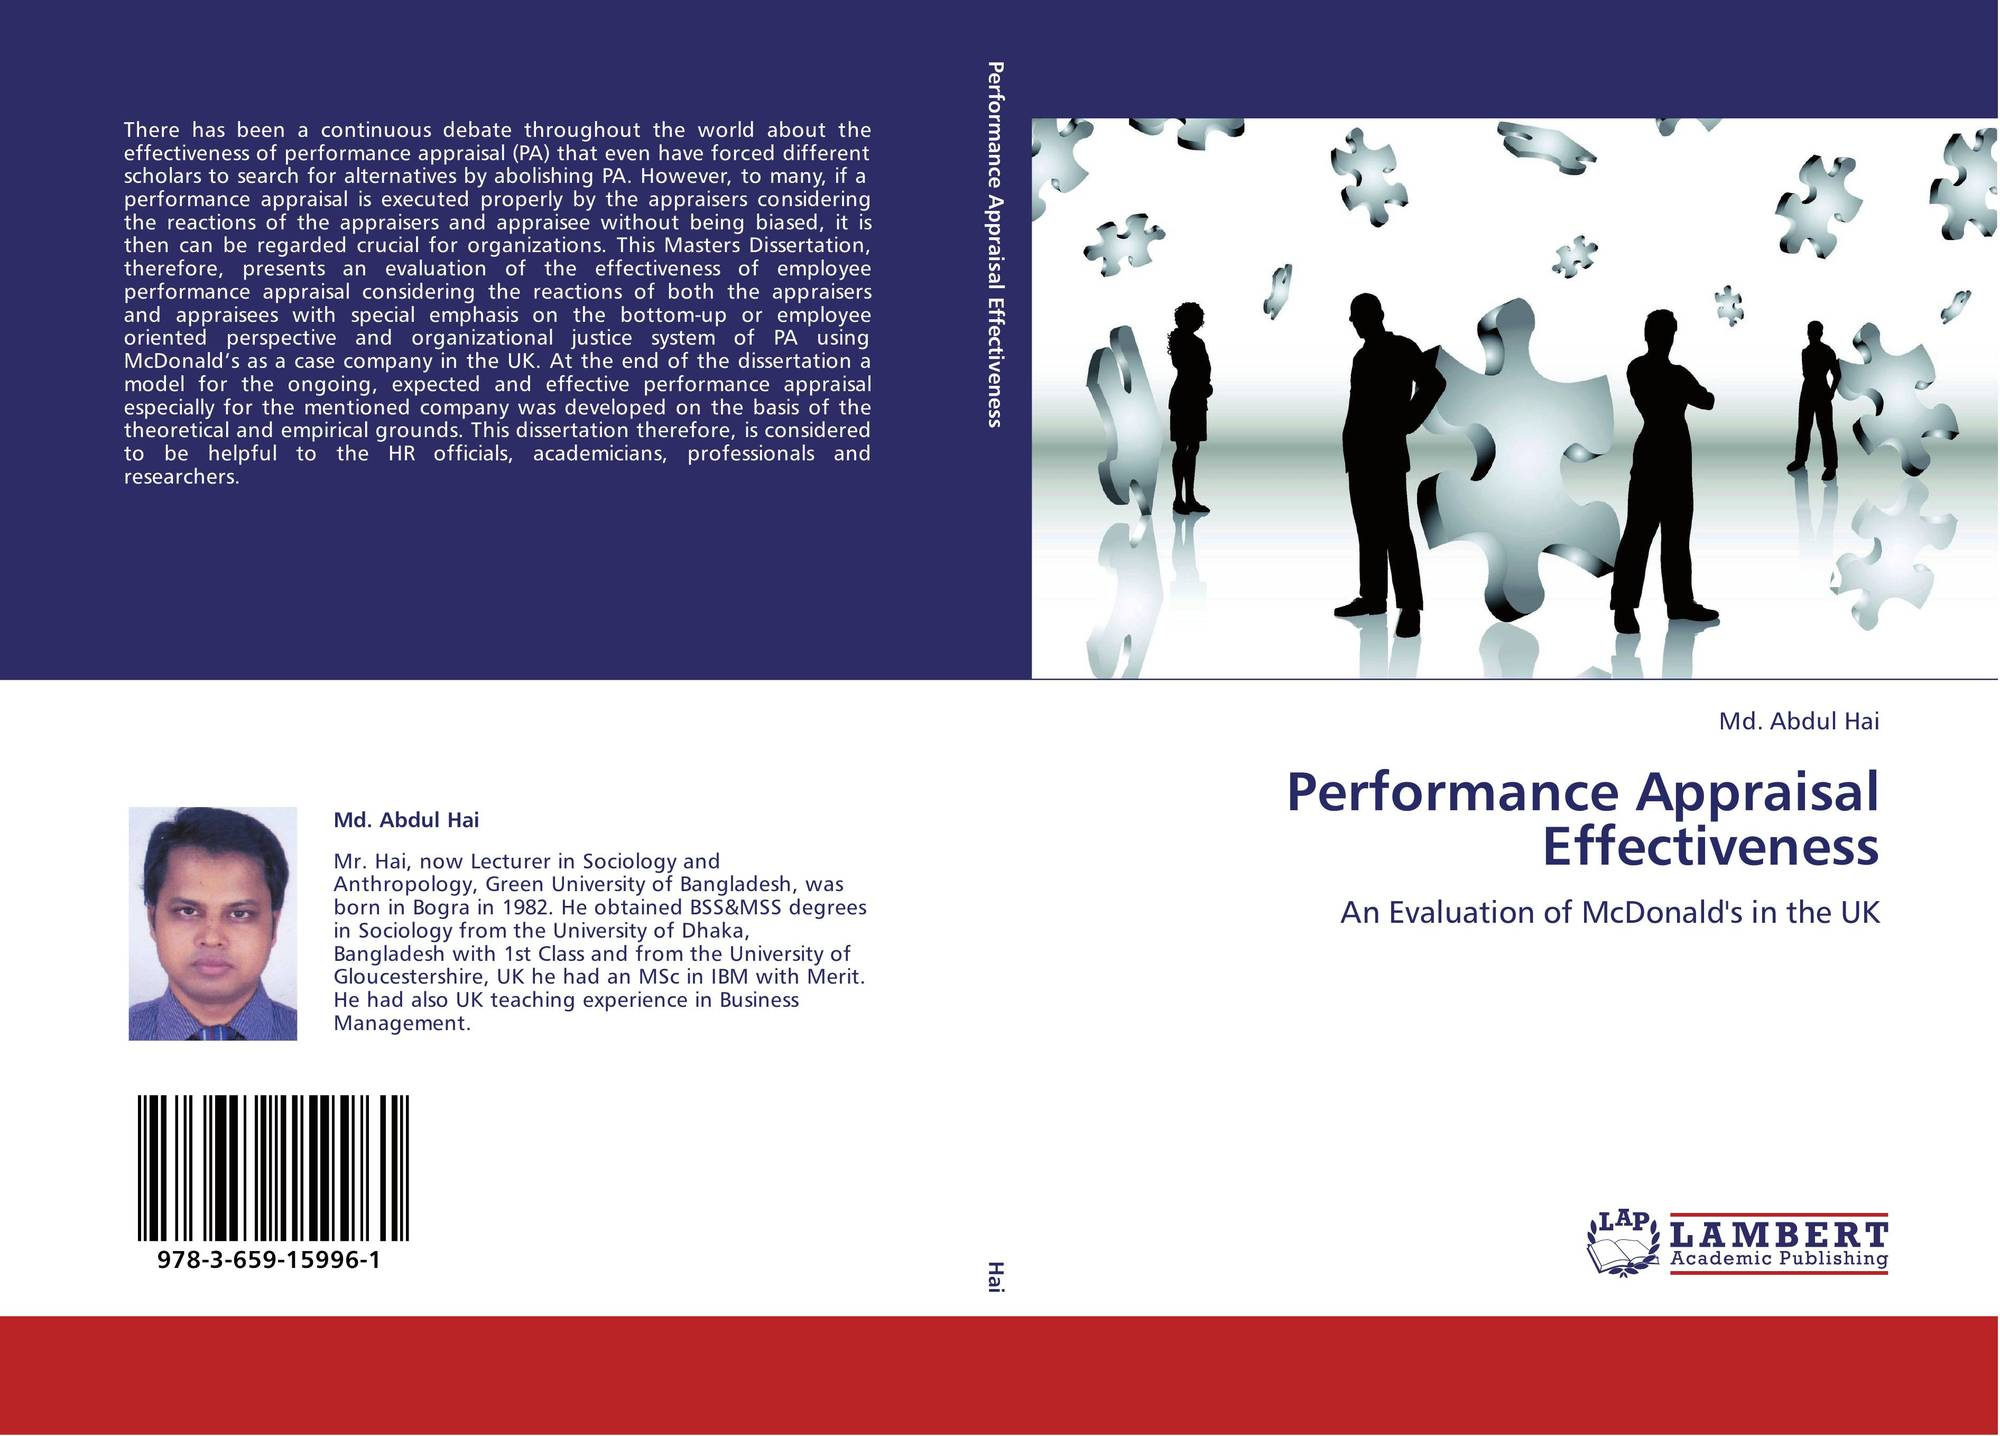 dissertation on performance appraisal Dissertation on performance management performance appraisal dissertation proposal examples and thesis papers on performance.